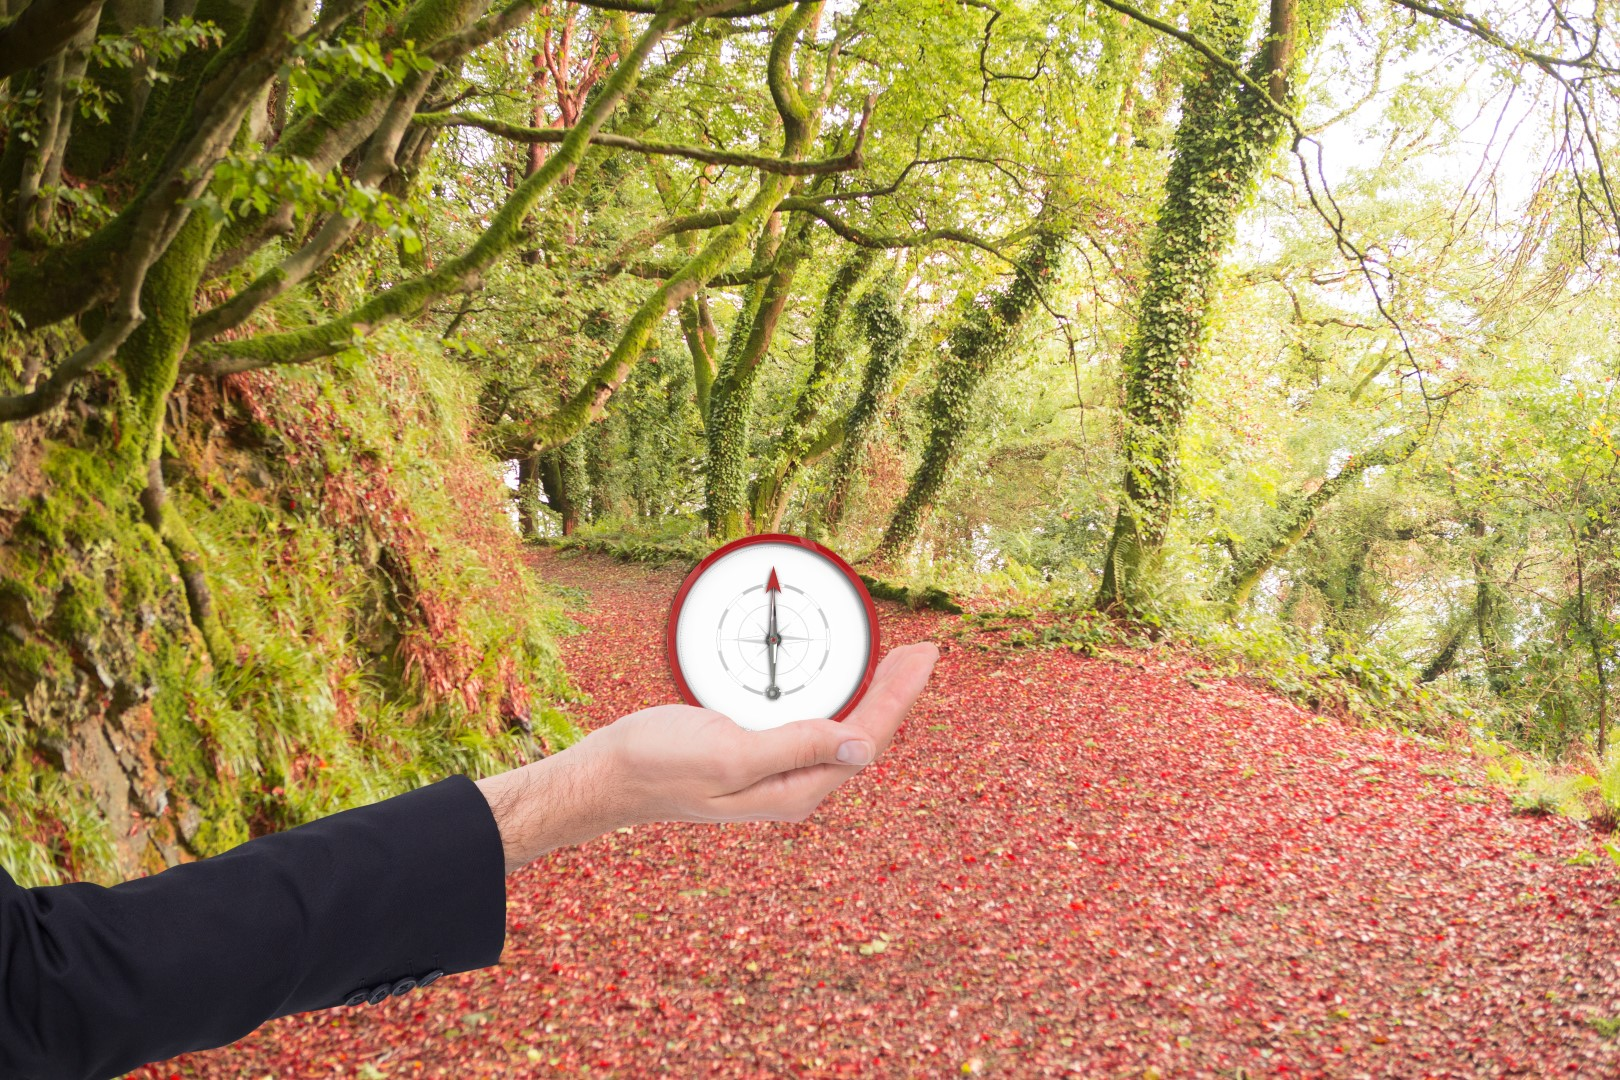 Fotolia_80380449_Subscription_Monthly_XXL-Large